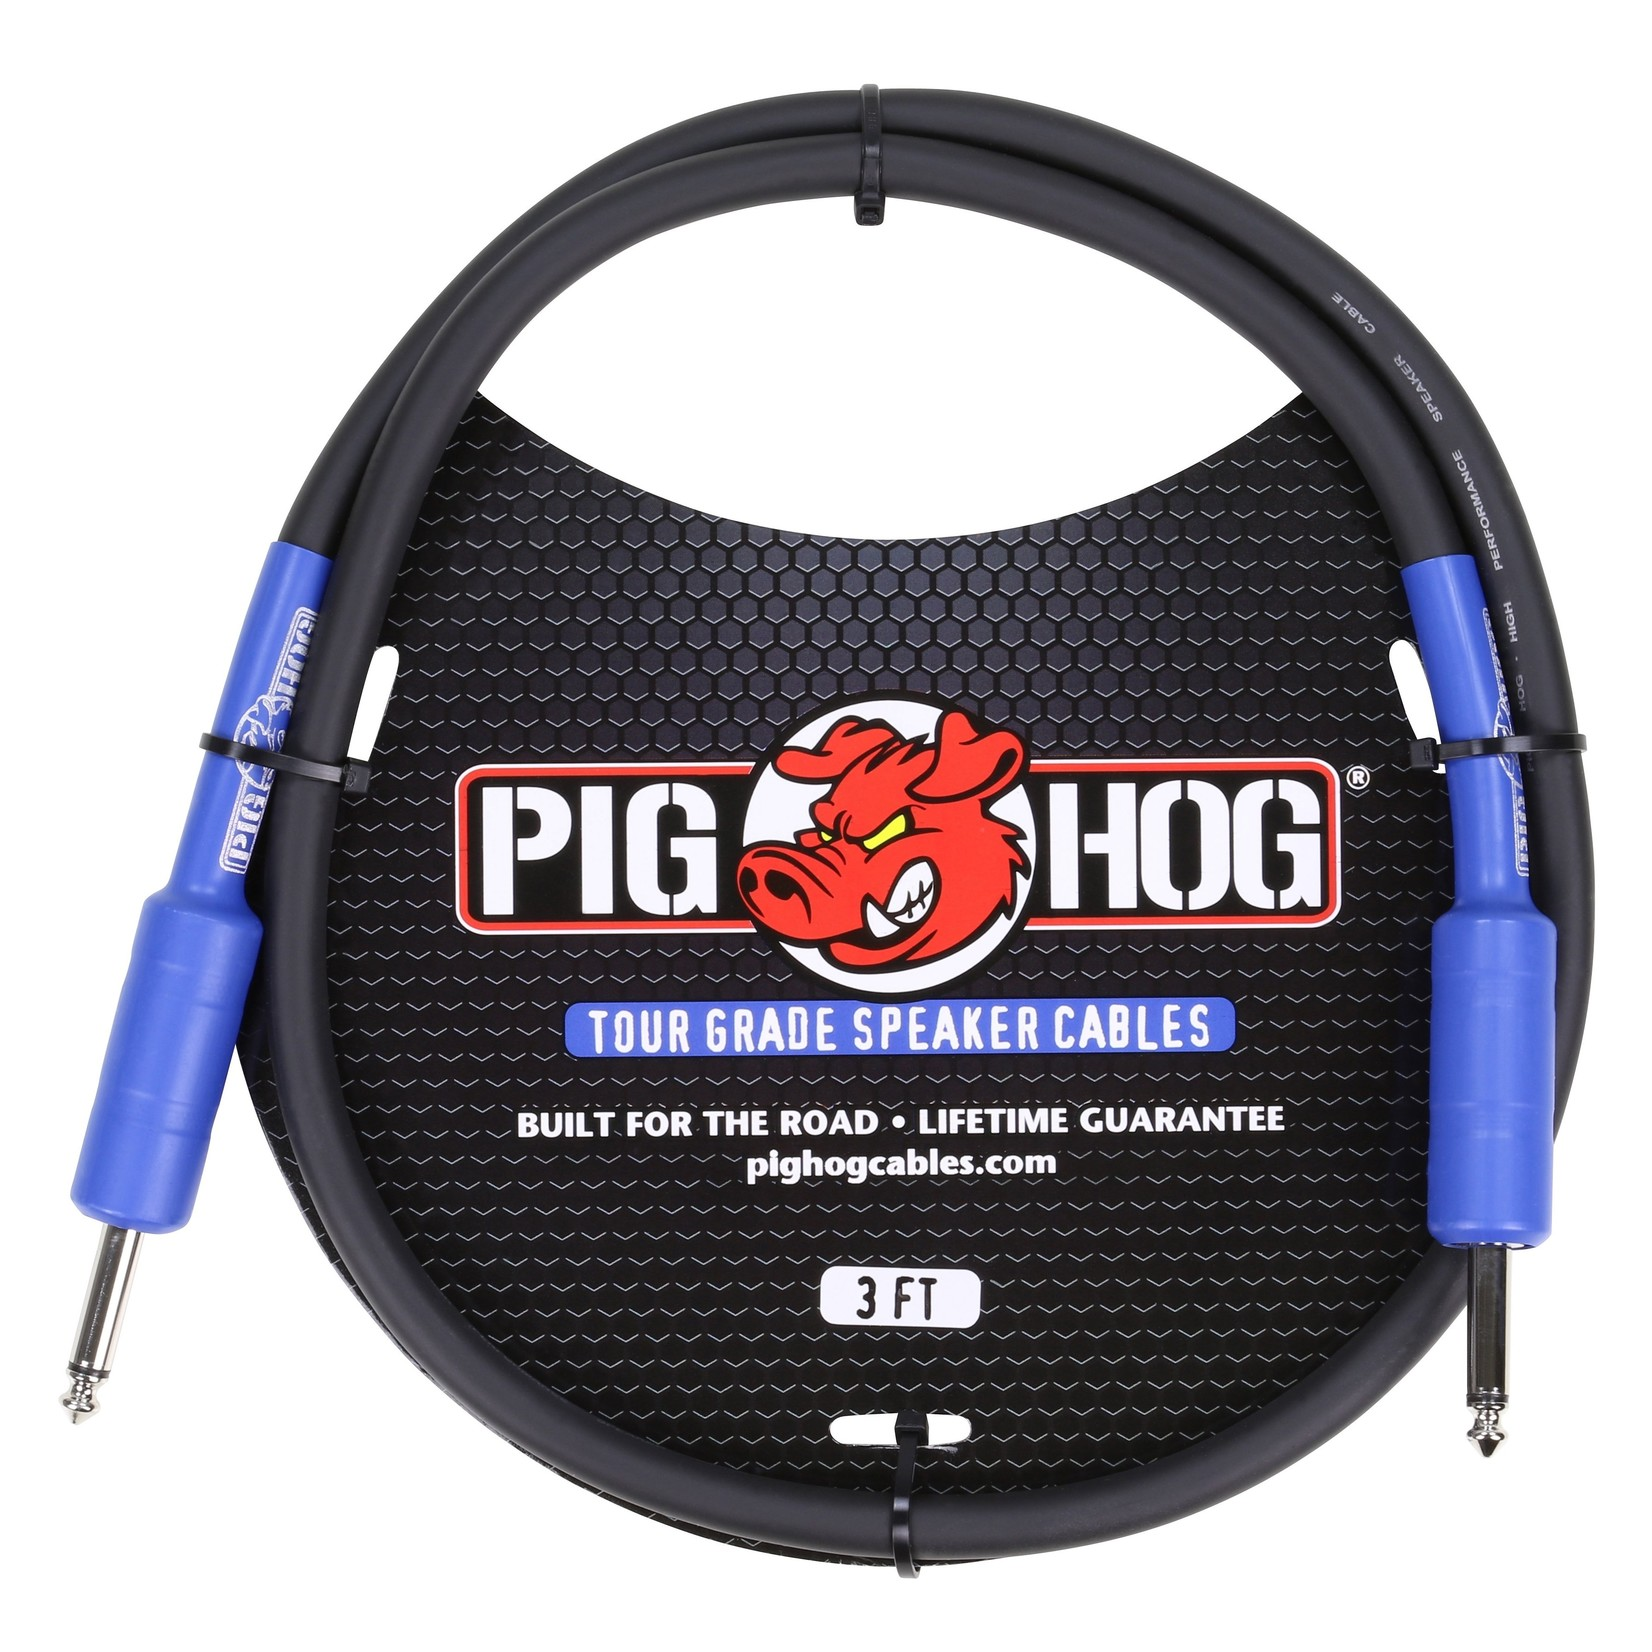 Pig Hog Pig Hog 9.2mm Tour Grade Speaker Cable, 3ft (14 gauge wire) (PHSC3)